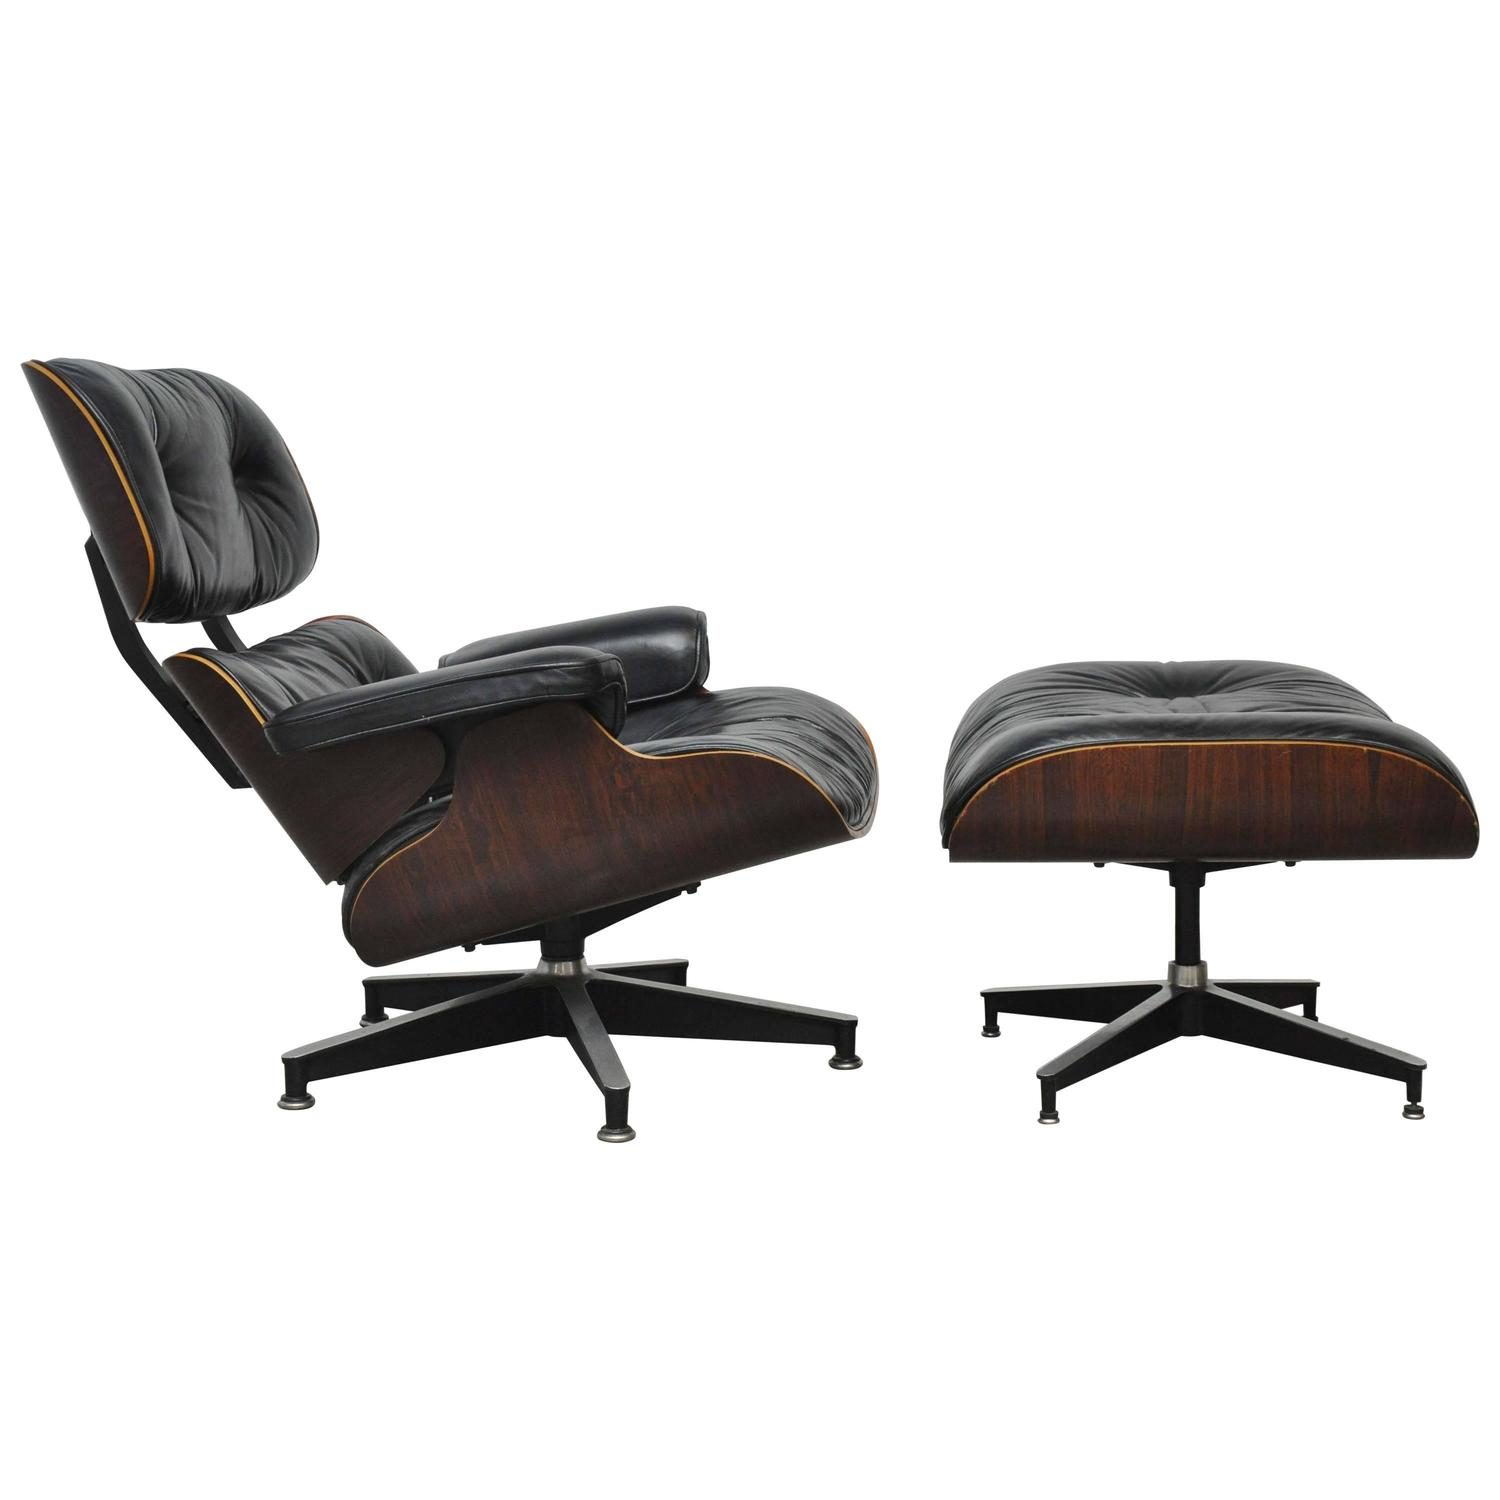 Rosewood Charles Eames Lounge Chair for Herman Miller For Sale at 1stdibs